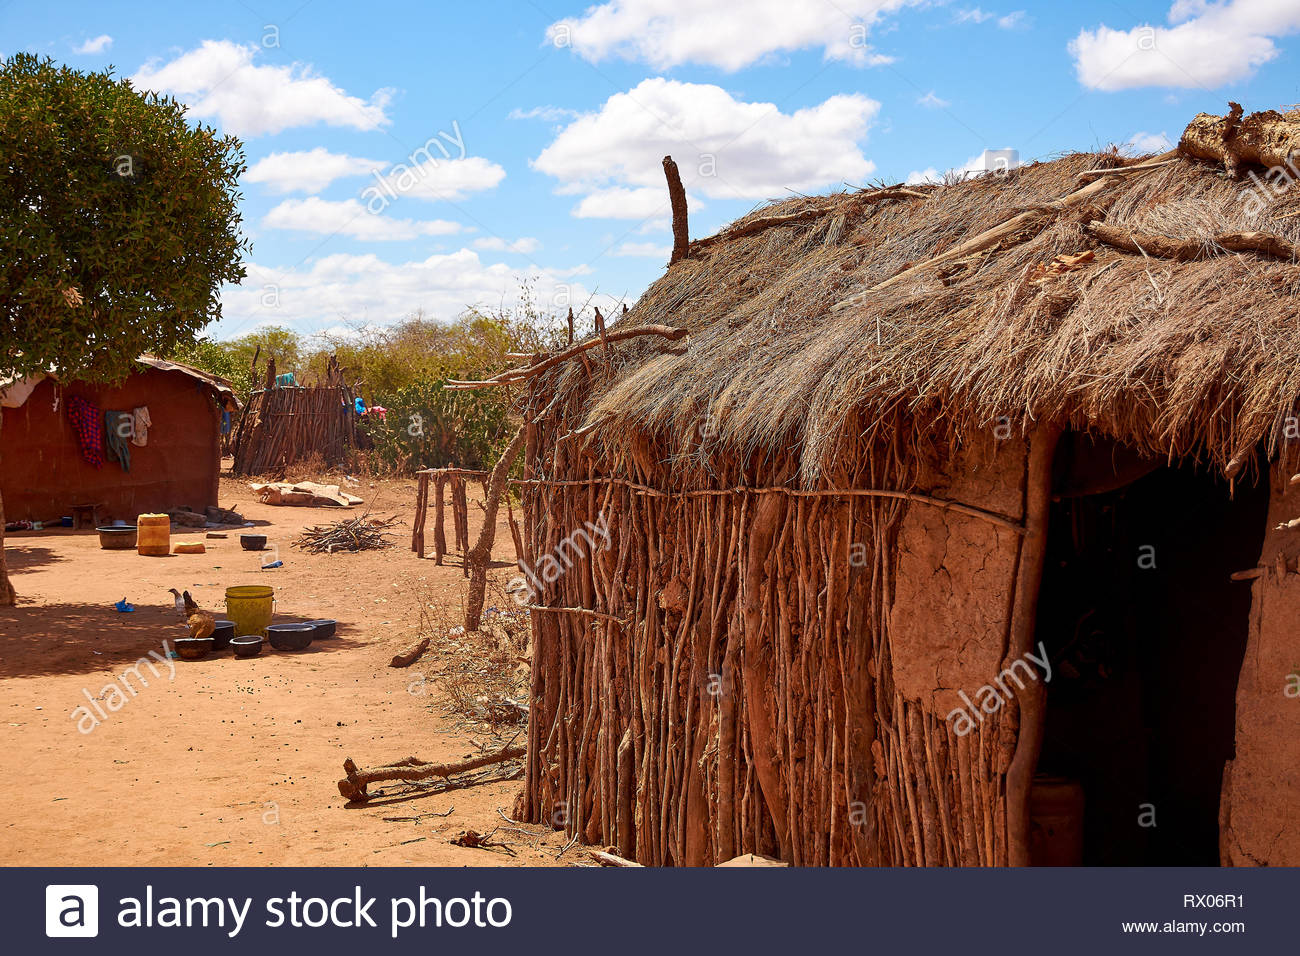 View of the Masai village with old clay huts. Poverty, misery and despair, living in Africa Stock Photo